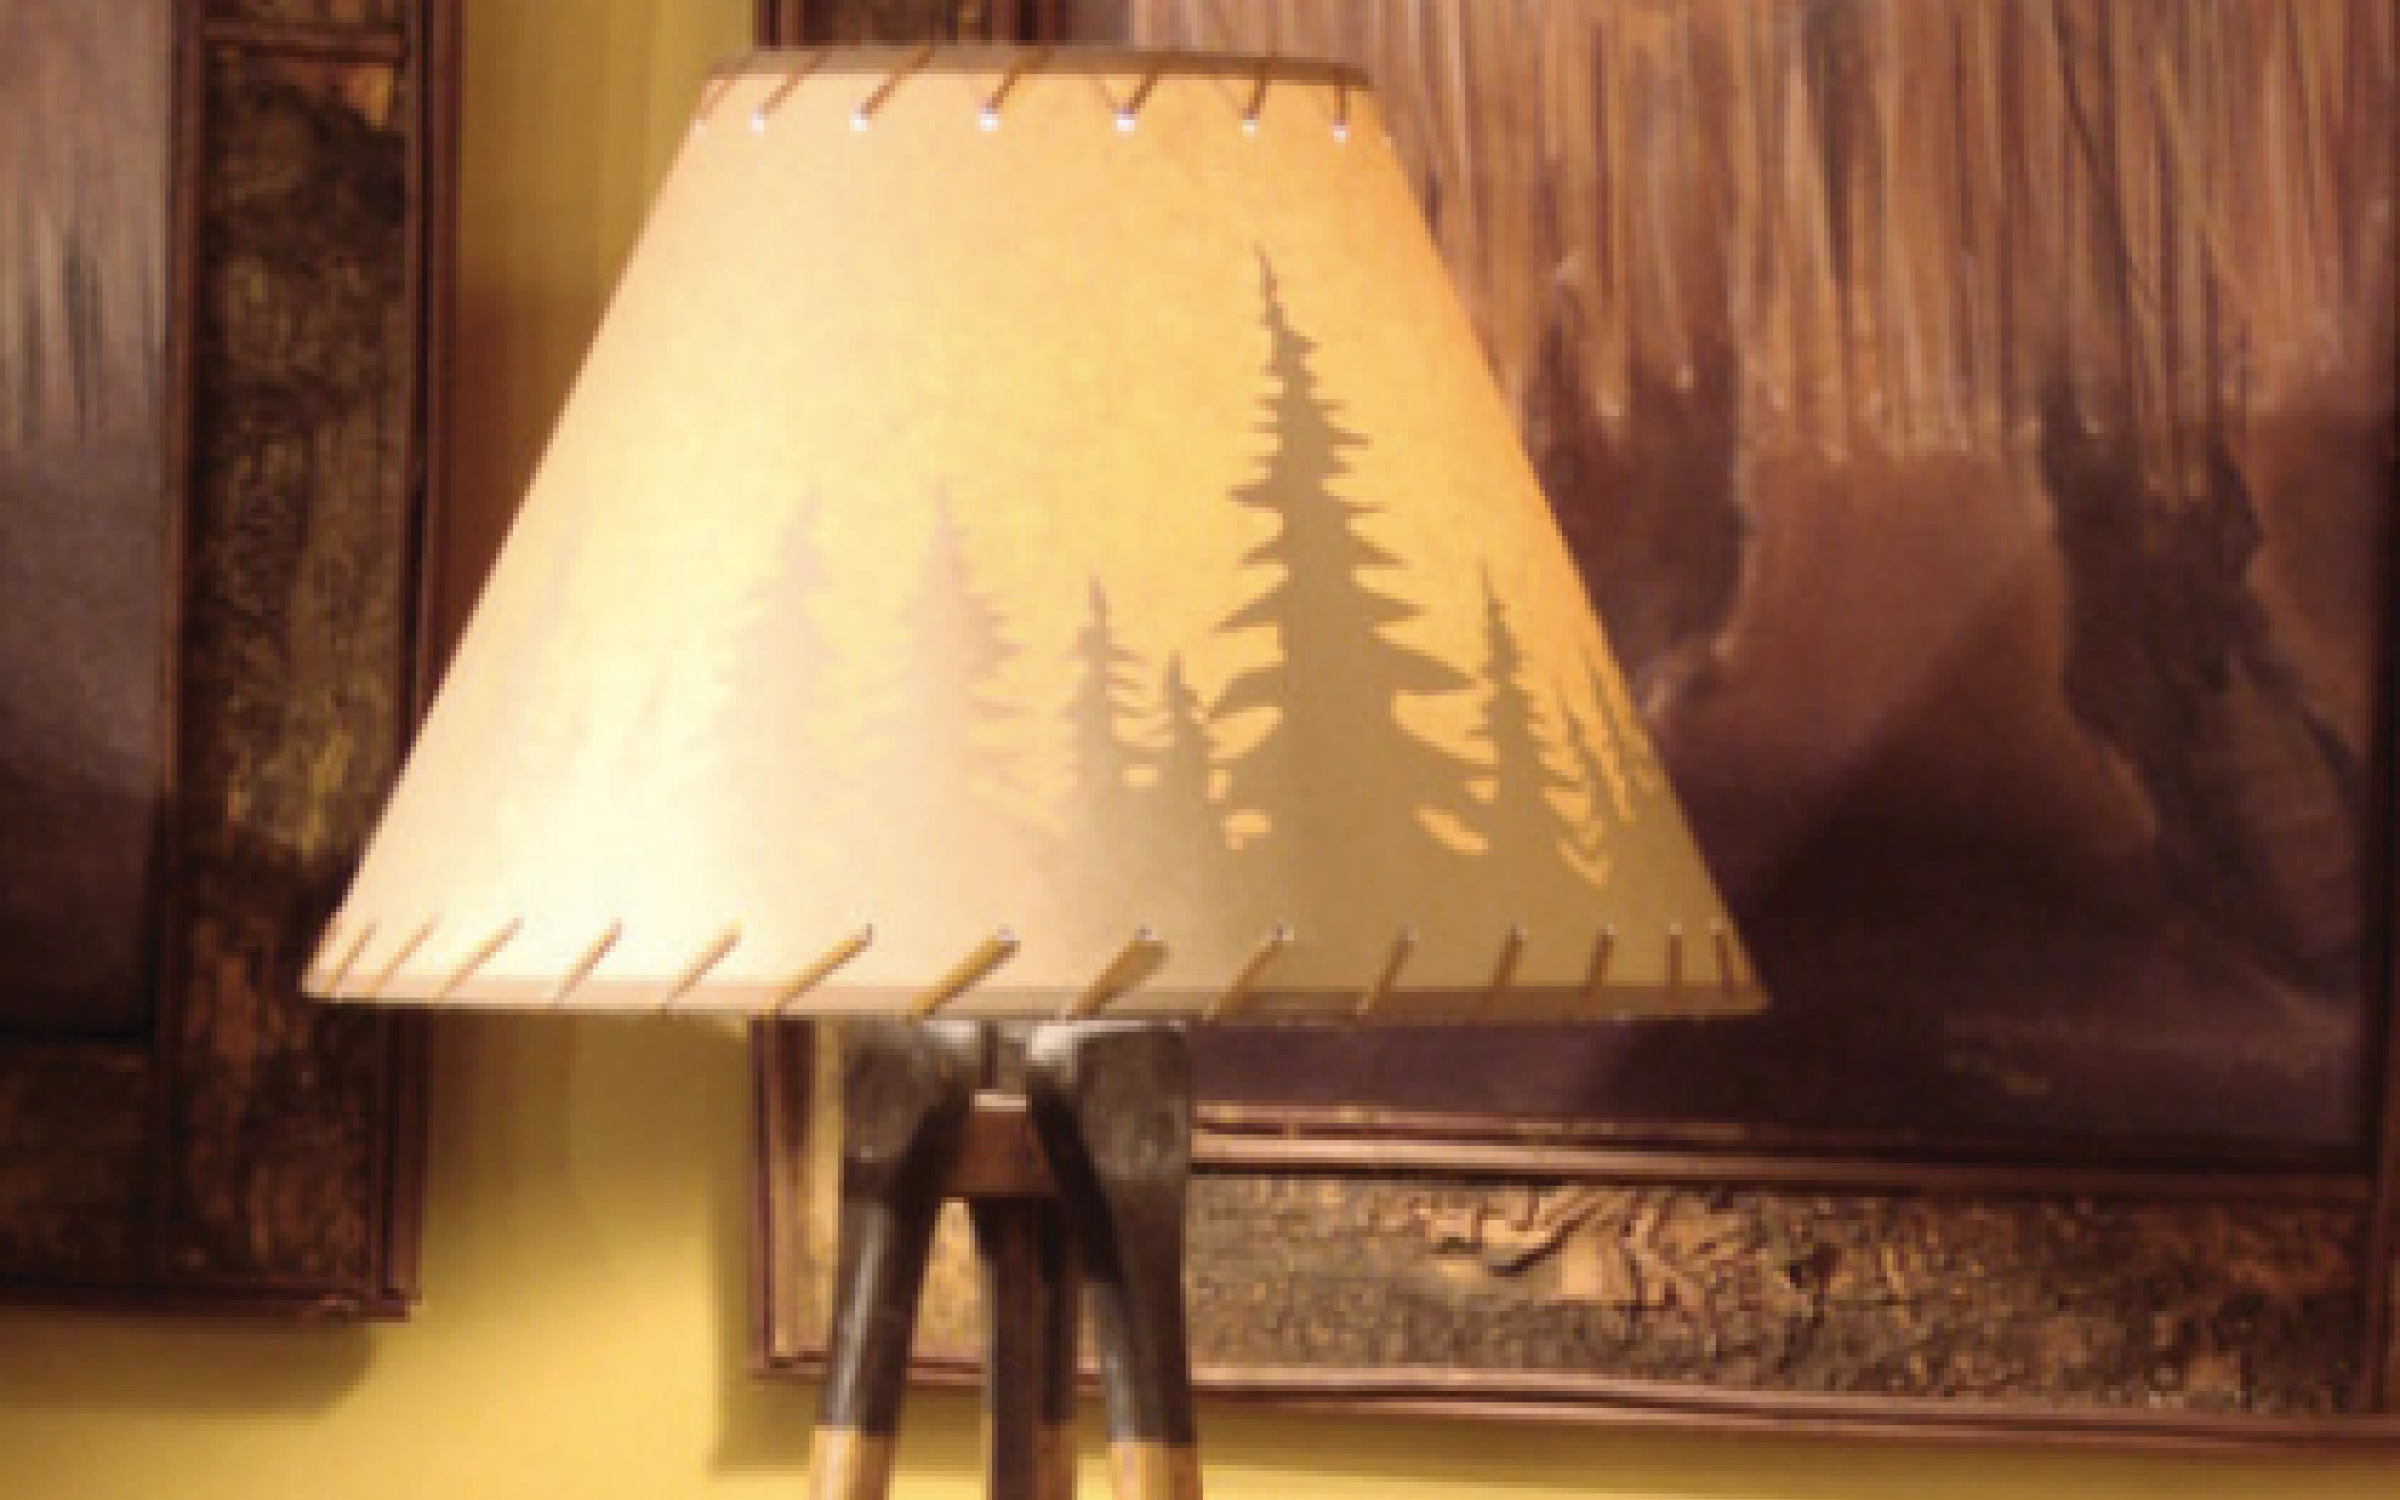 Rustic Table Lamp Paddle Tree Lamp Shade Mountain | iFurnish, Frisco, CO